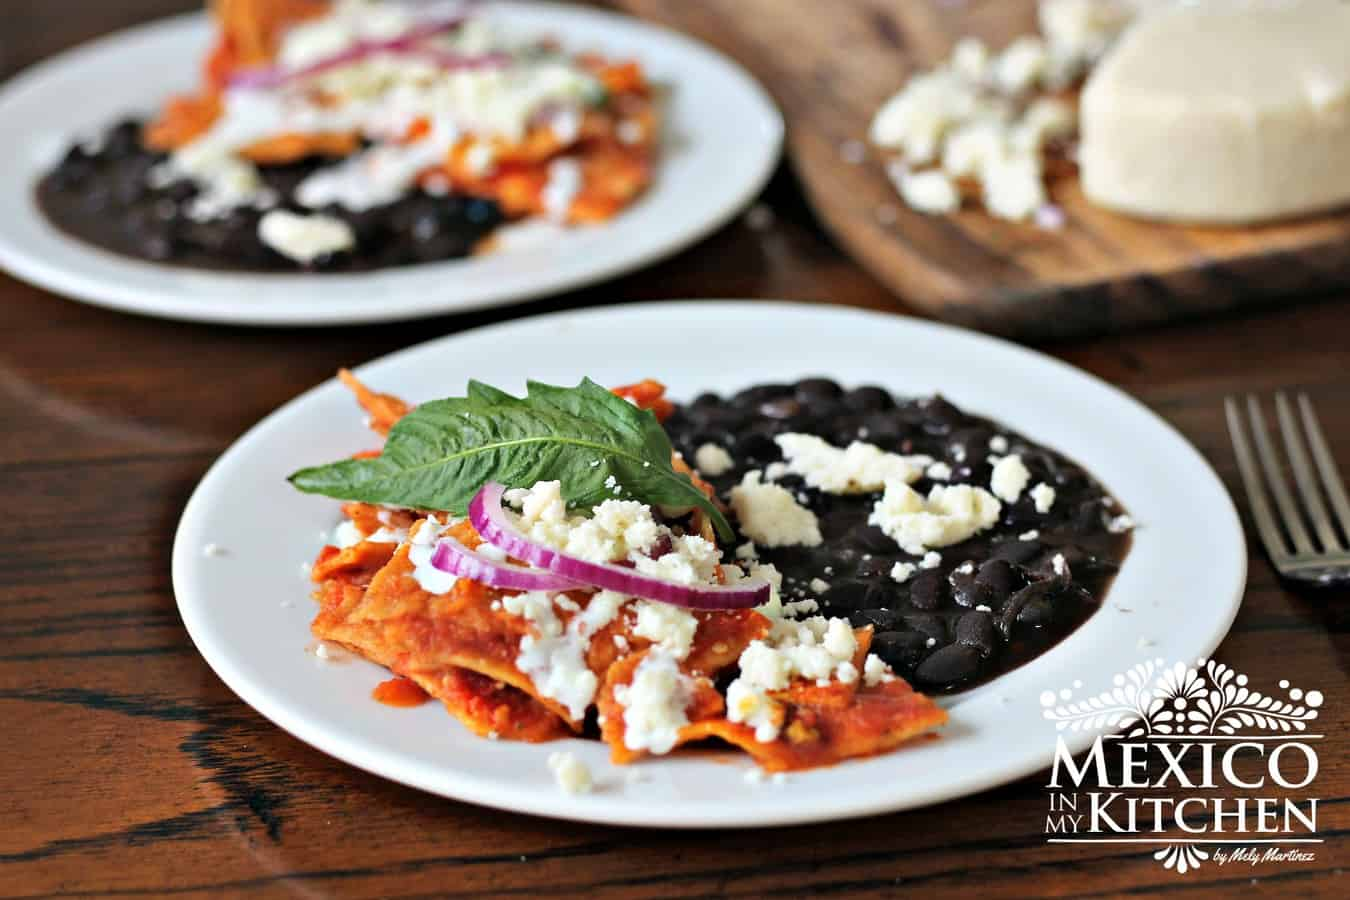 Mexican Chilaquiles recipe, red chilaquiles or chilaquiles rojos.